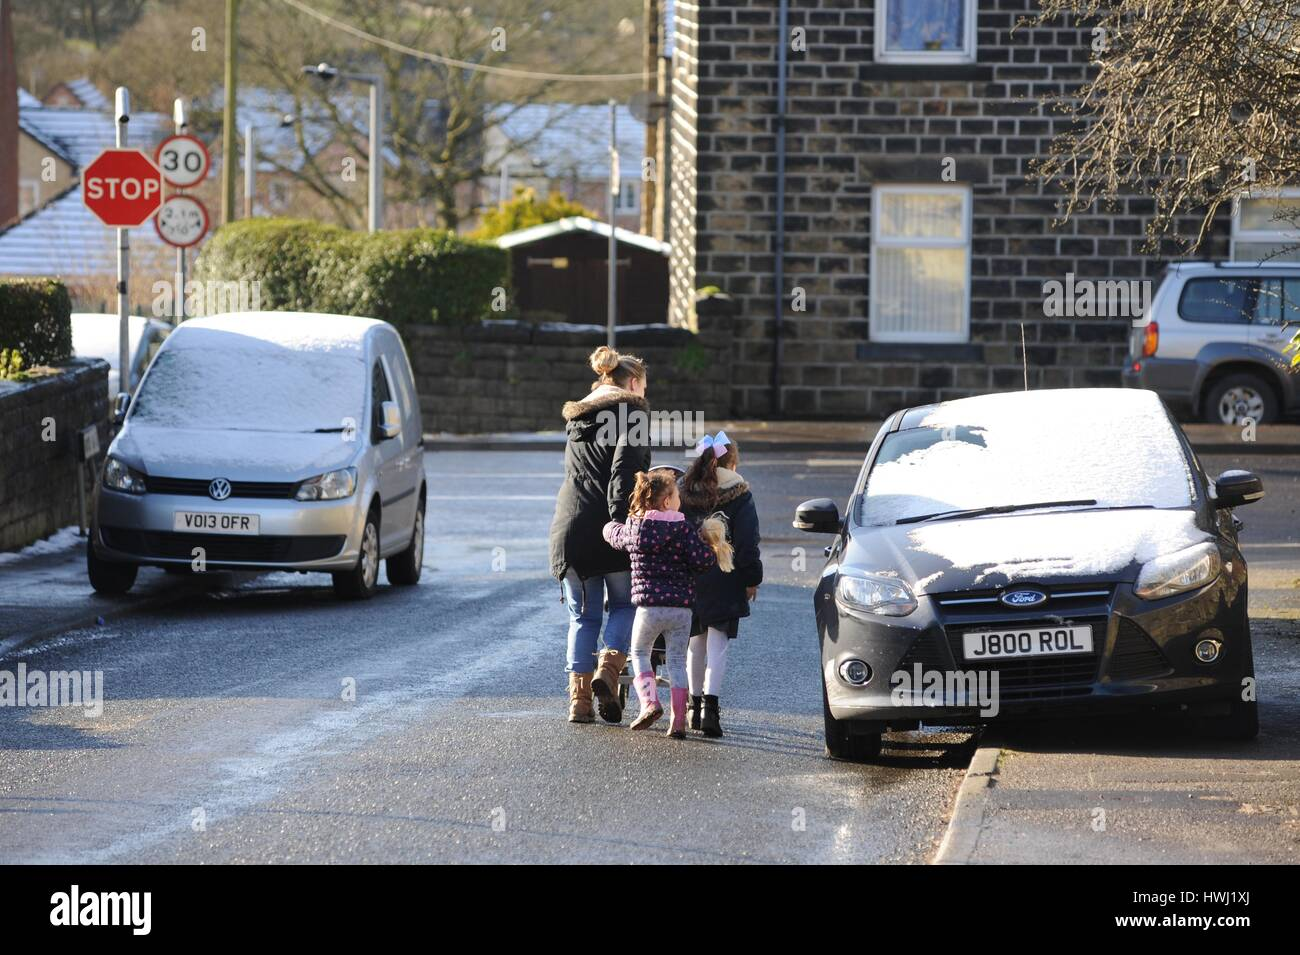 A woman dangerously walks her children around a car which is parked on the pavement. - Stock Image